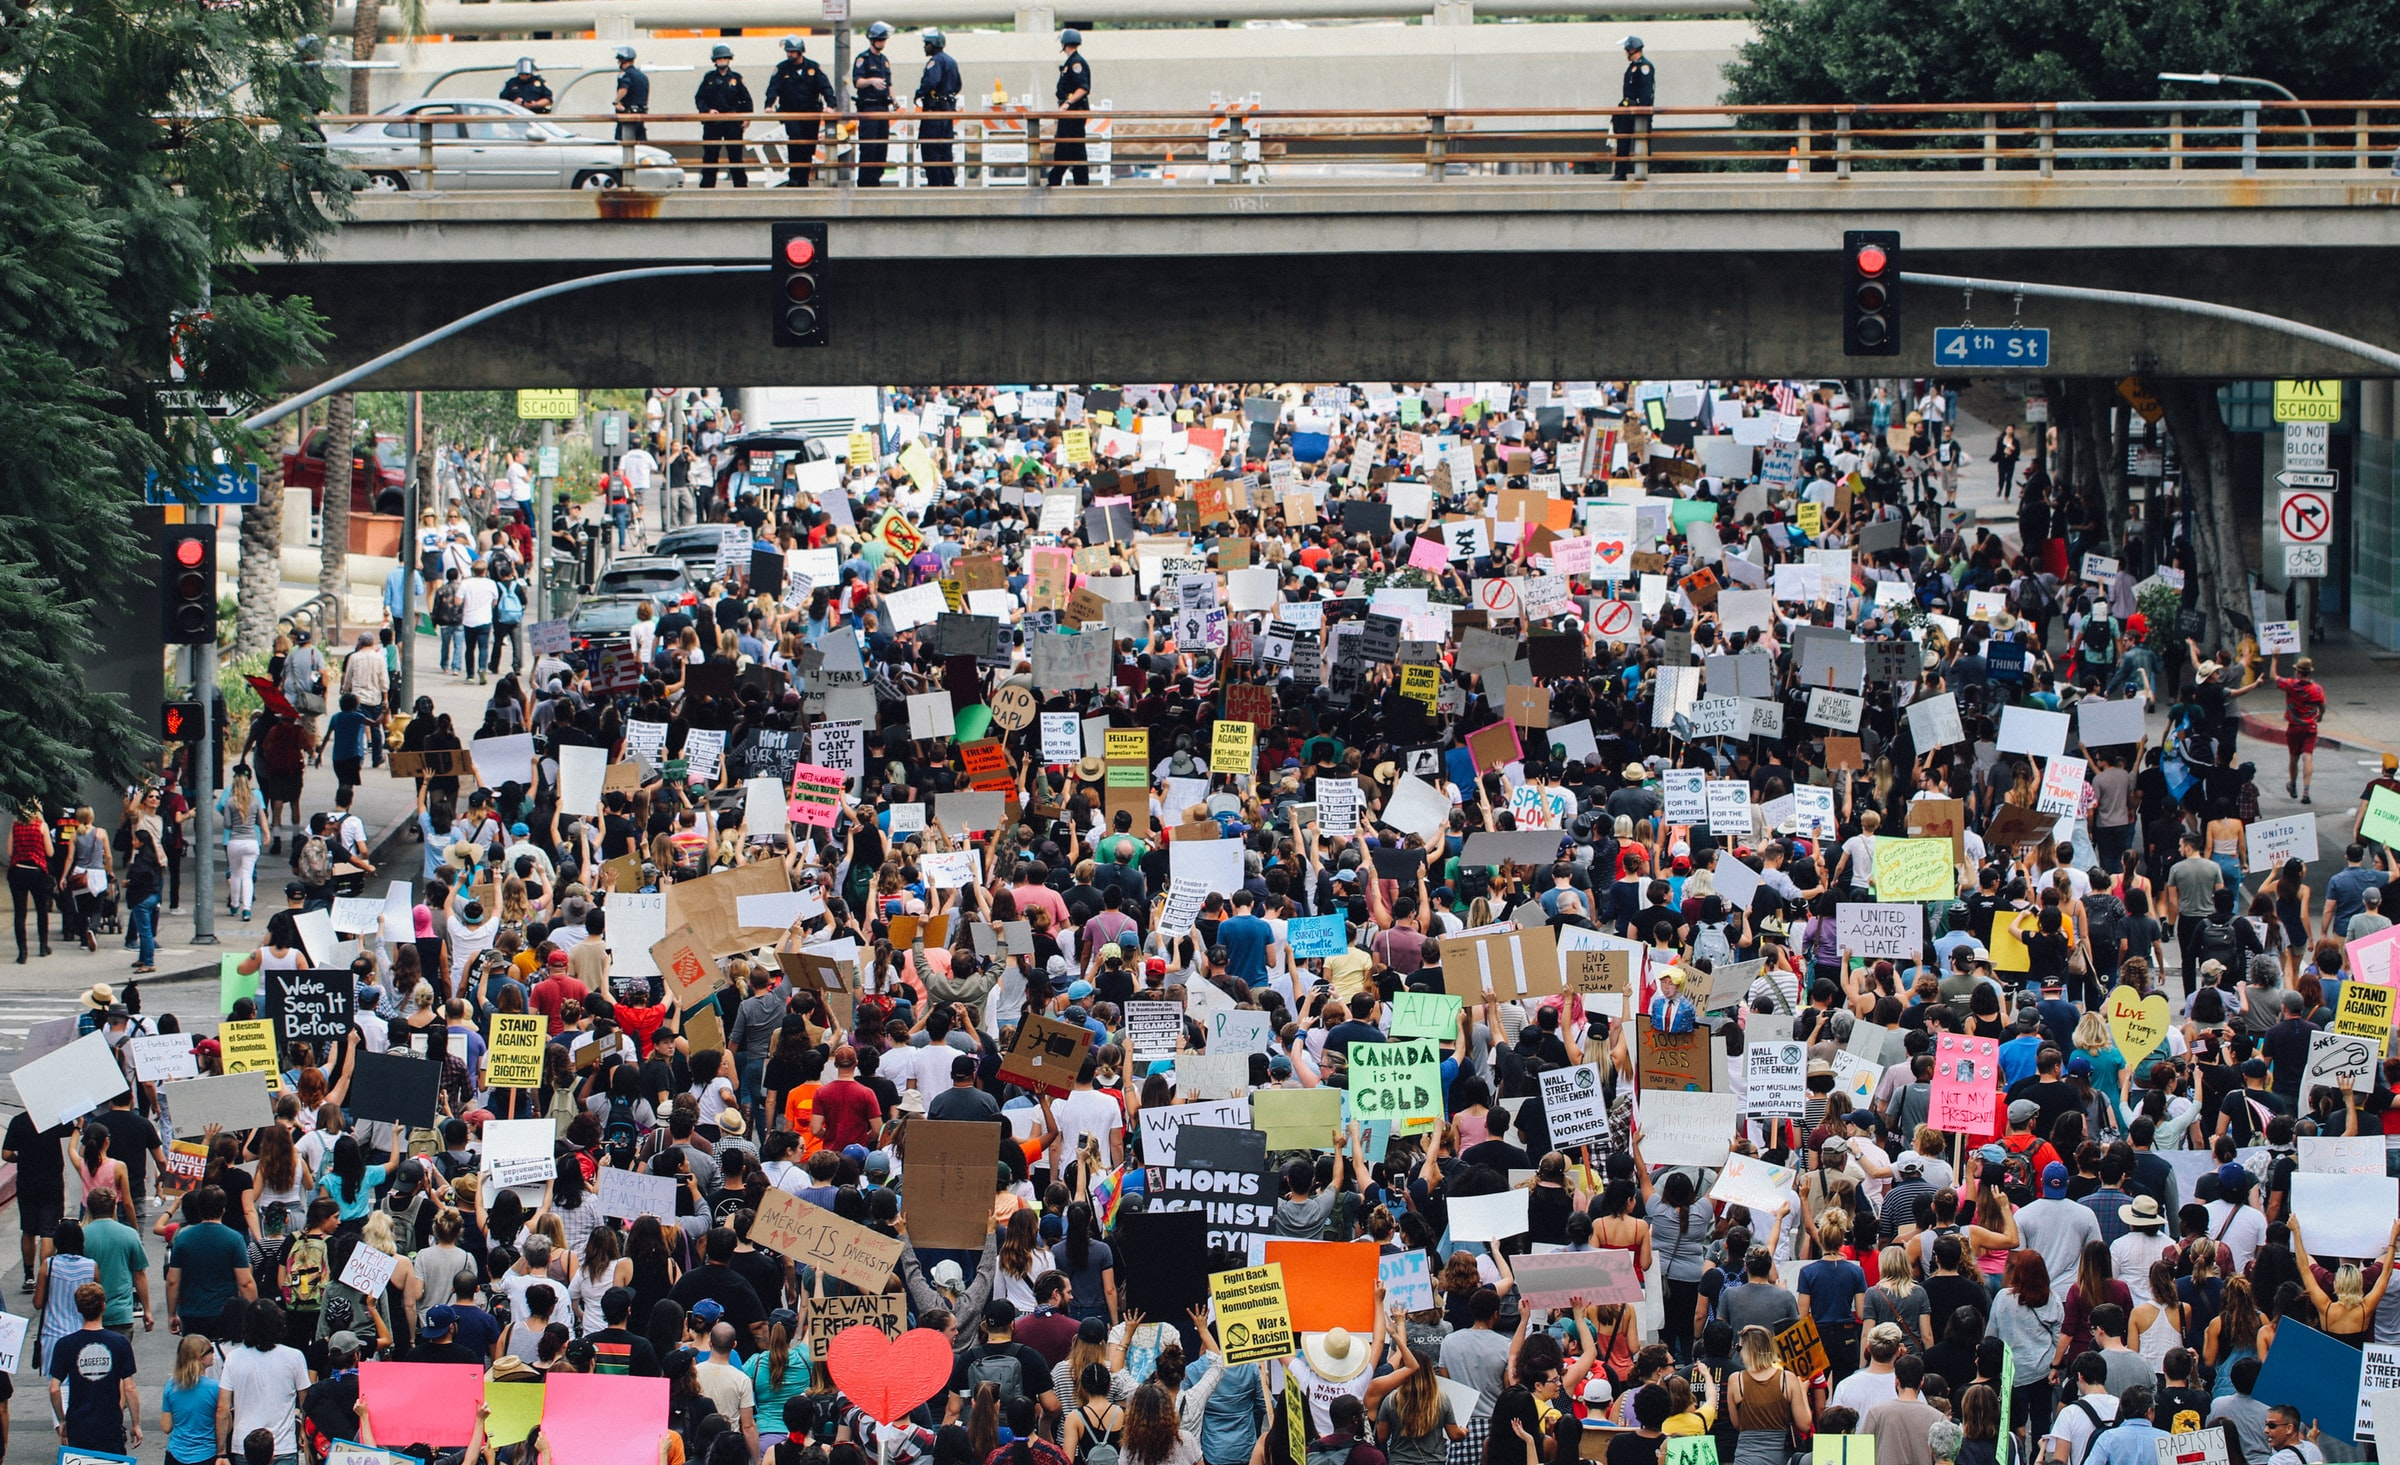 View of large protest in Los Angeles, California in 2017